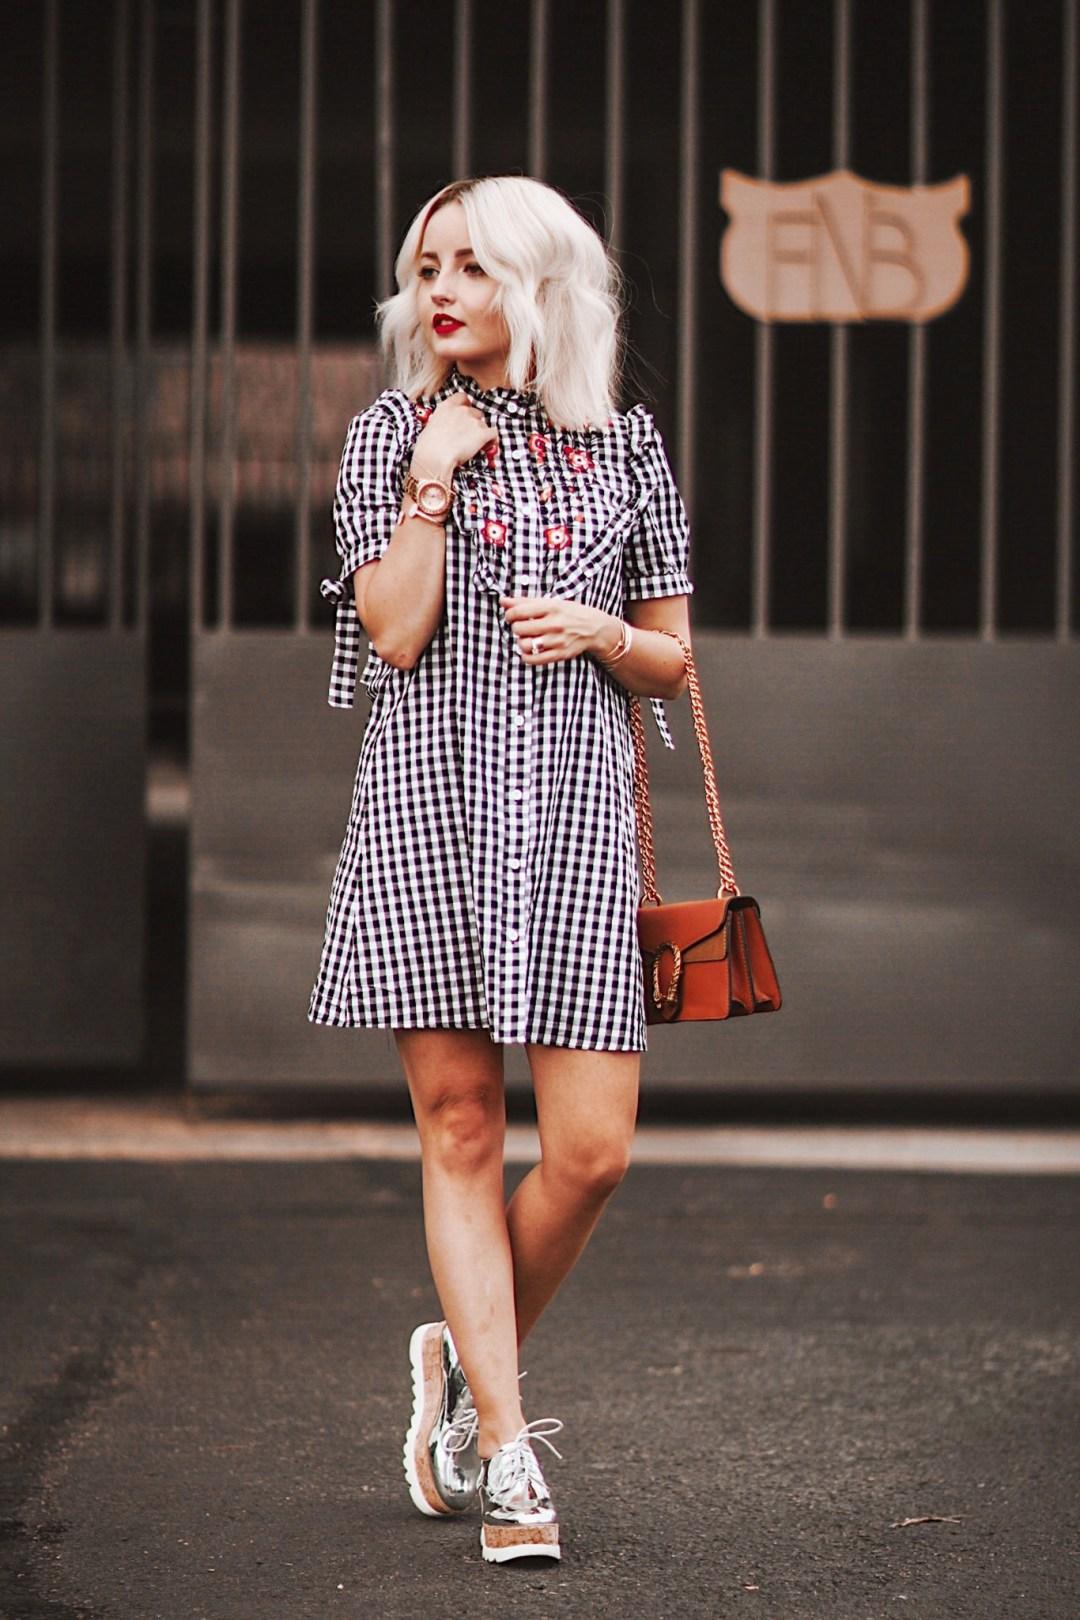 Alena Gidenko of modaprints.com styles a gingham with metalic shoes